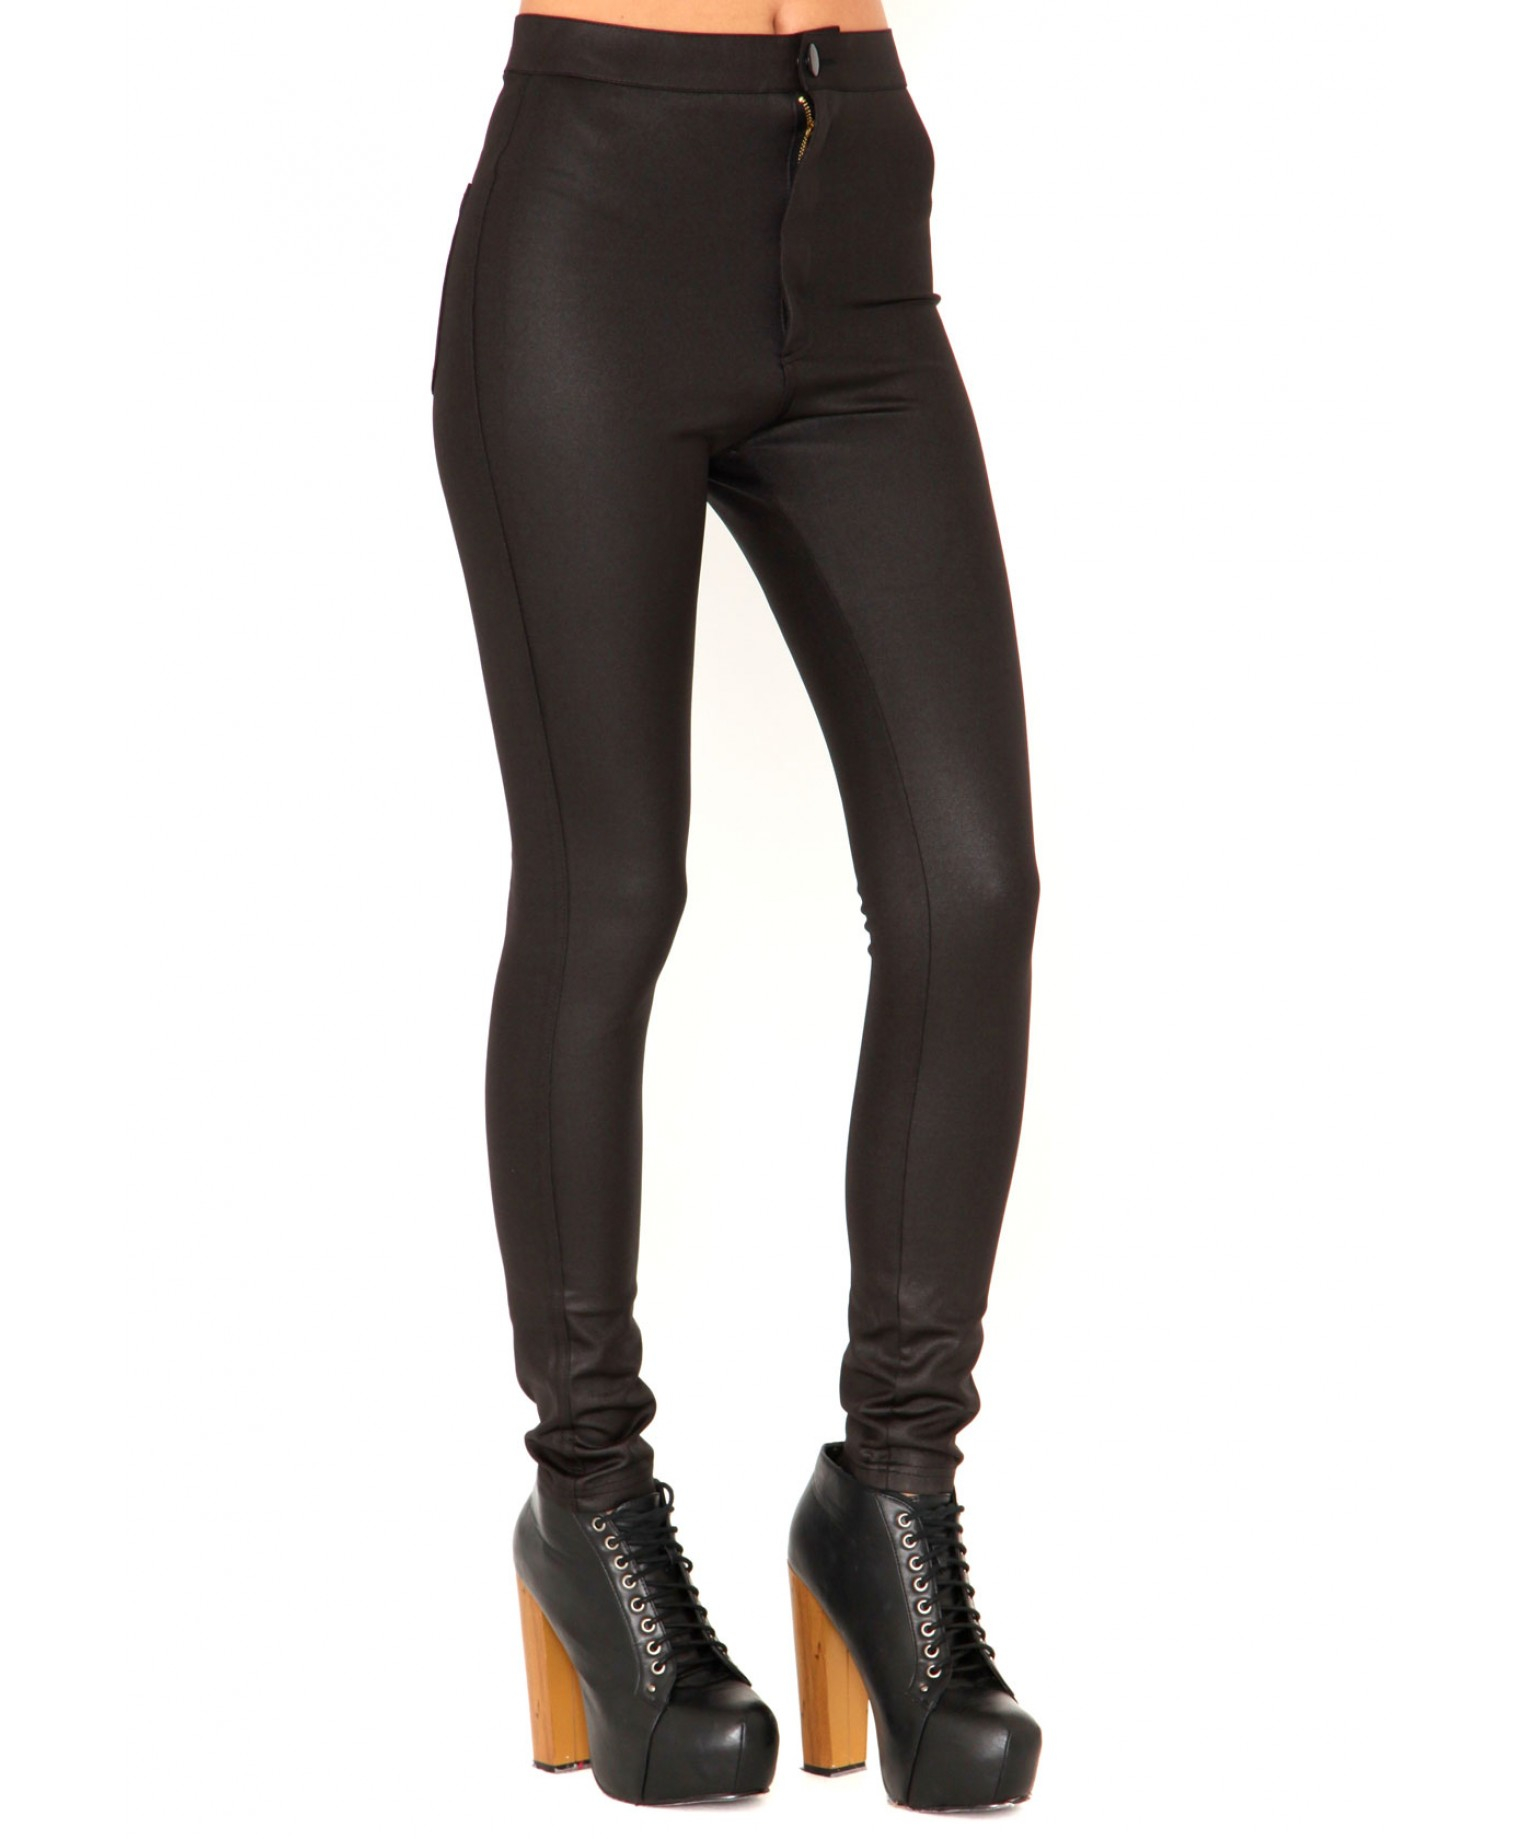 02d0066ecc0 Lyst - Missguided Eugenie Shiny Disco Pants In Black in Black